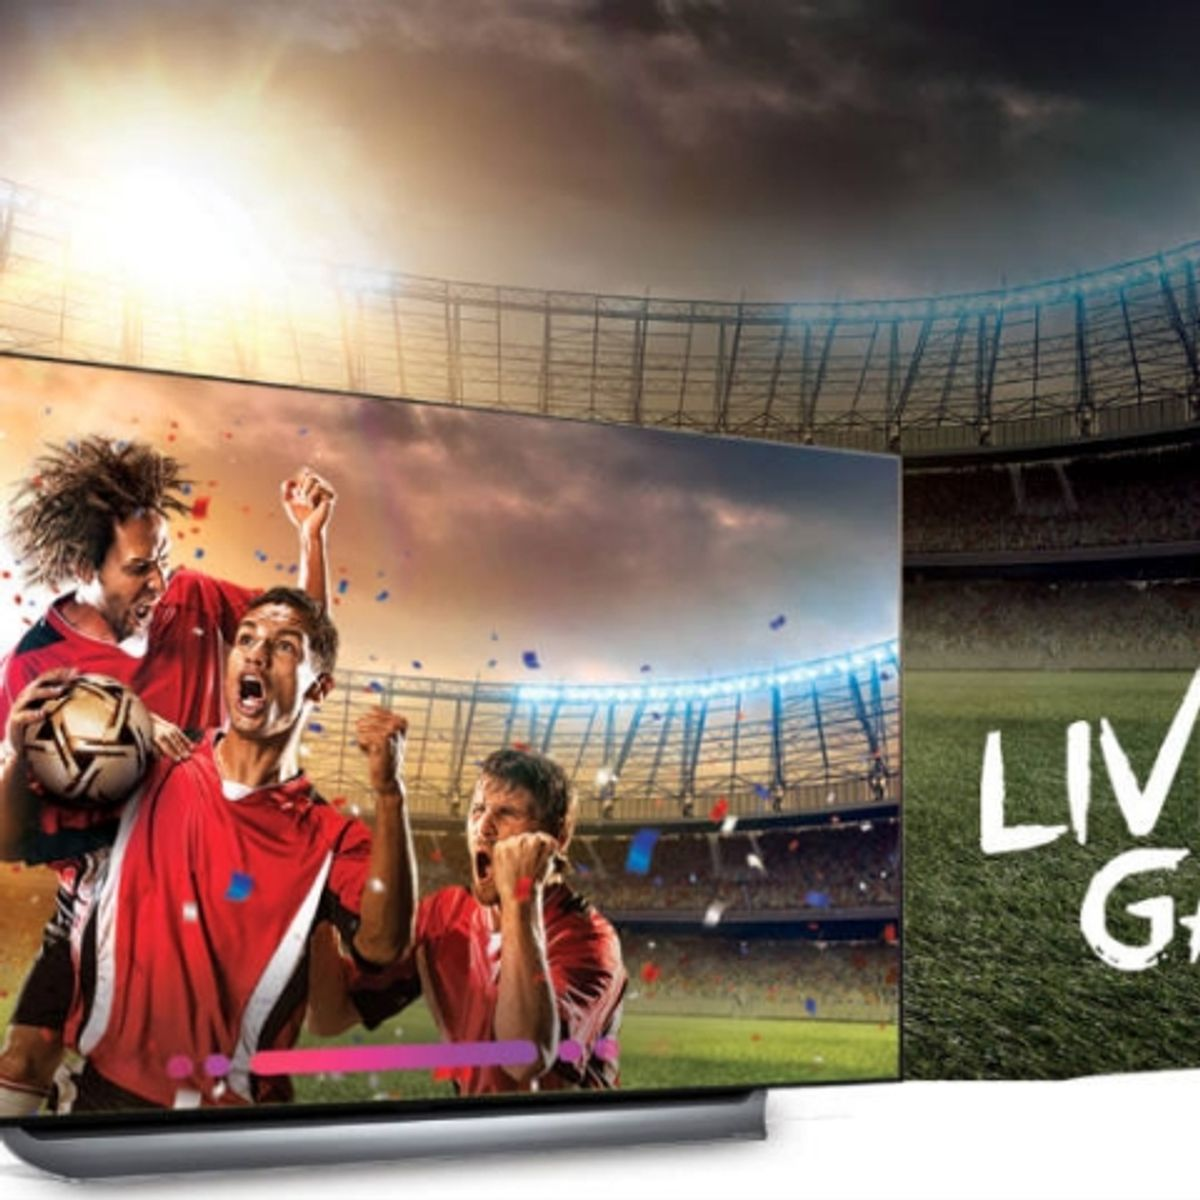 LG unveils ThinQ Artificial Intelligence (AI) powered TVs in